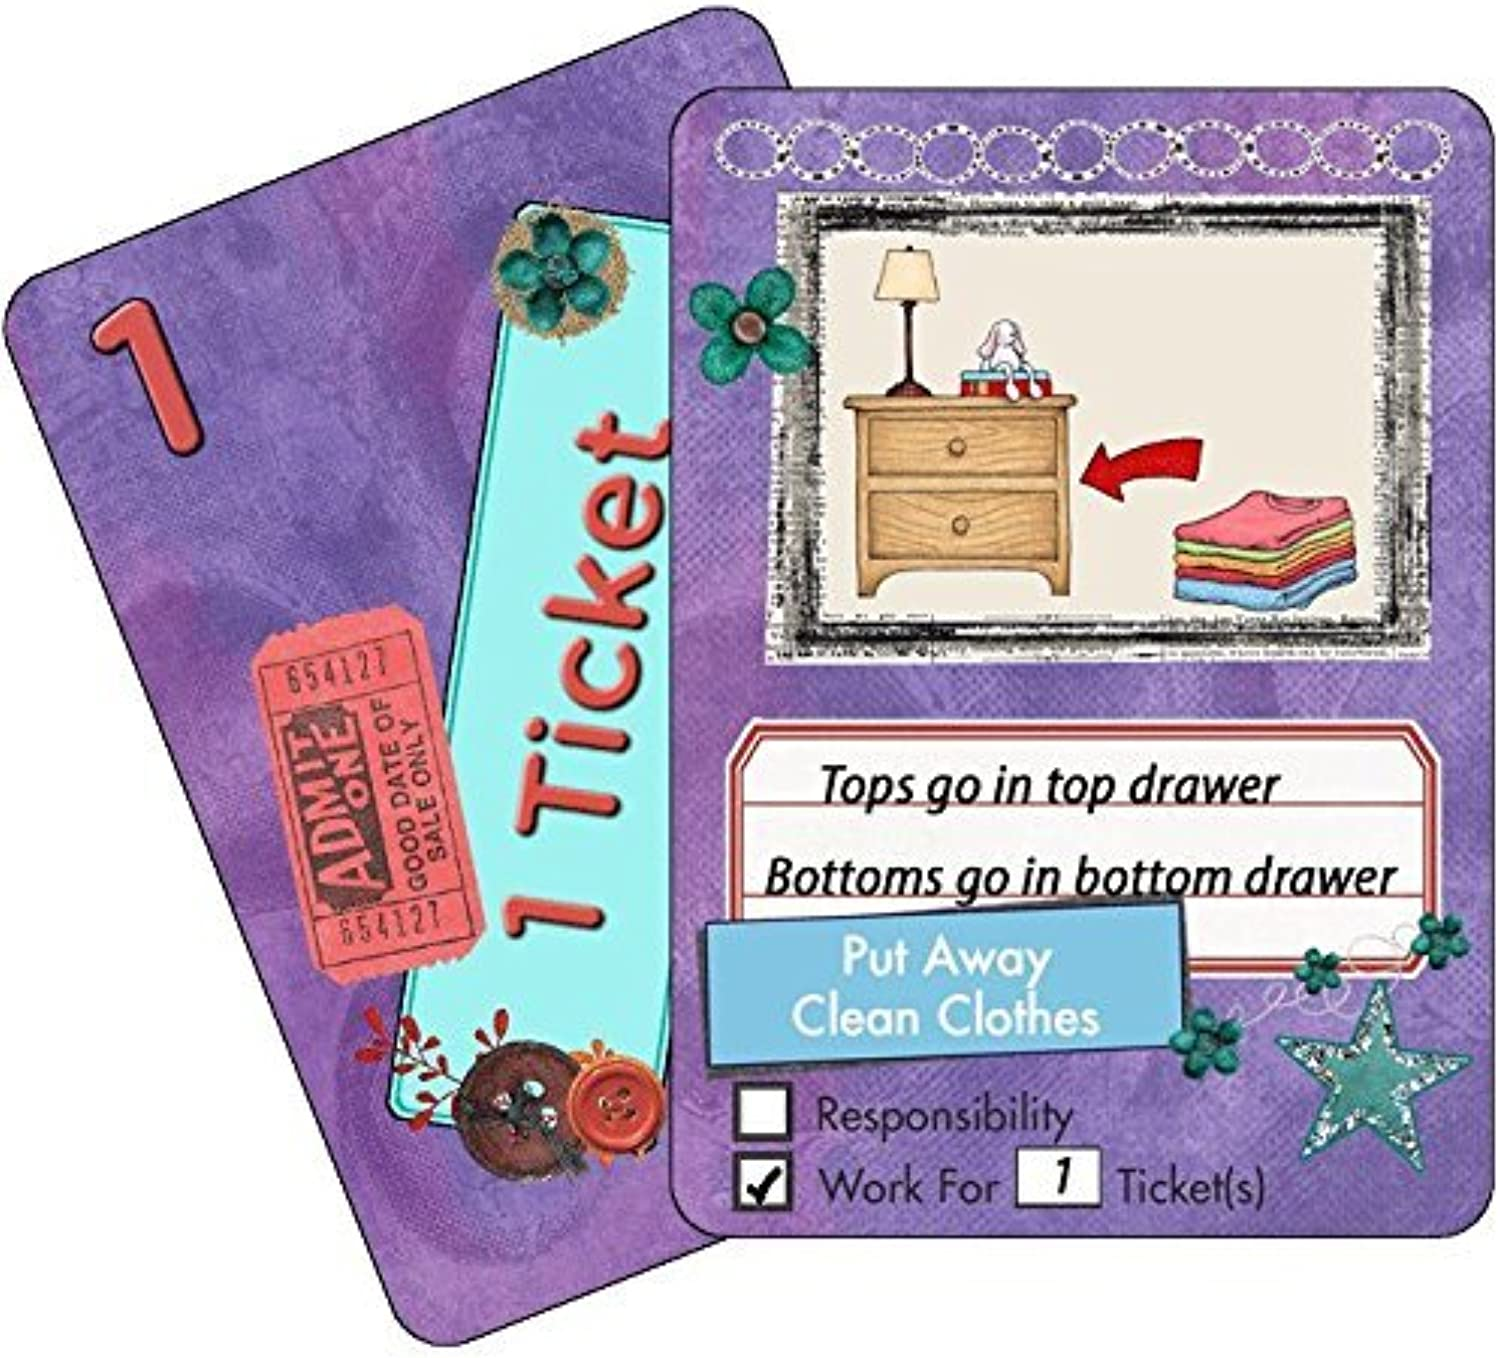 NEATLINGS Chore Cards. SelfCare Deck. 28 Chores. 21 Ticket Cards. Purple